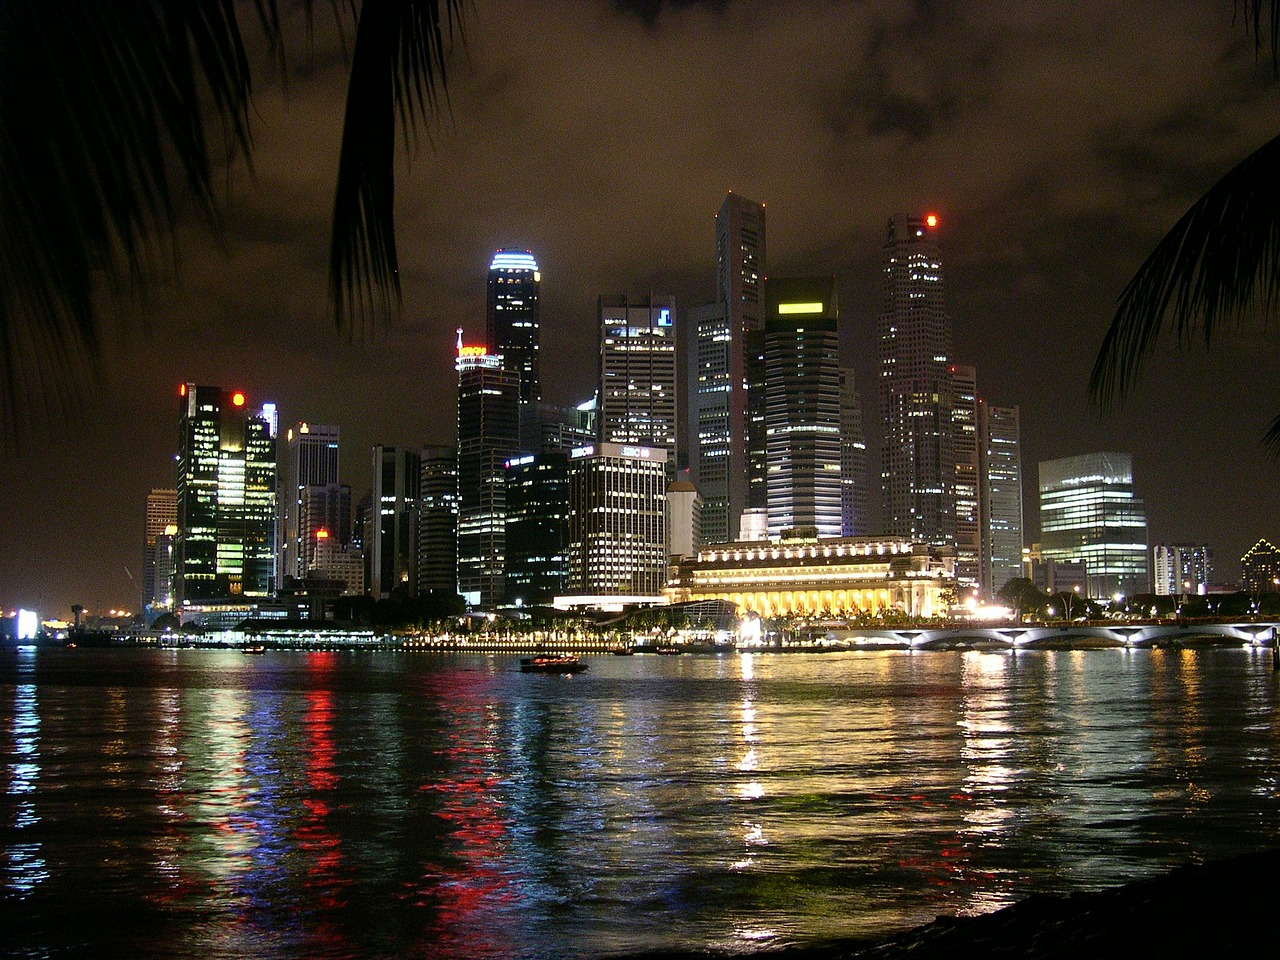 singapore,city,sea,view,night,lighting,skyscrapers,skyscraper,lights,long exposure,free pictures, free photos, free images, royalty free, free illustrations, public domain